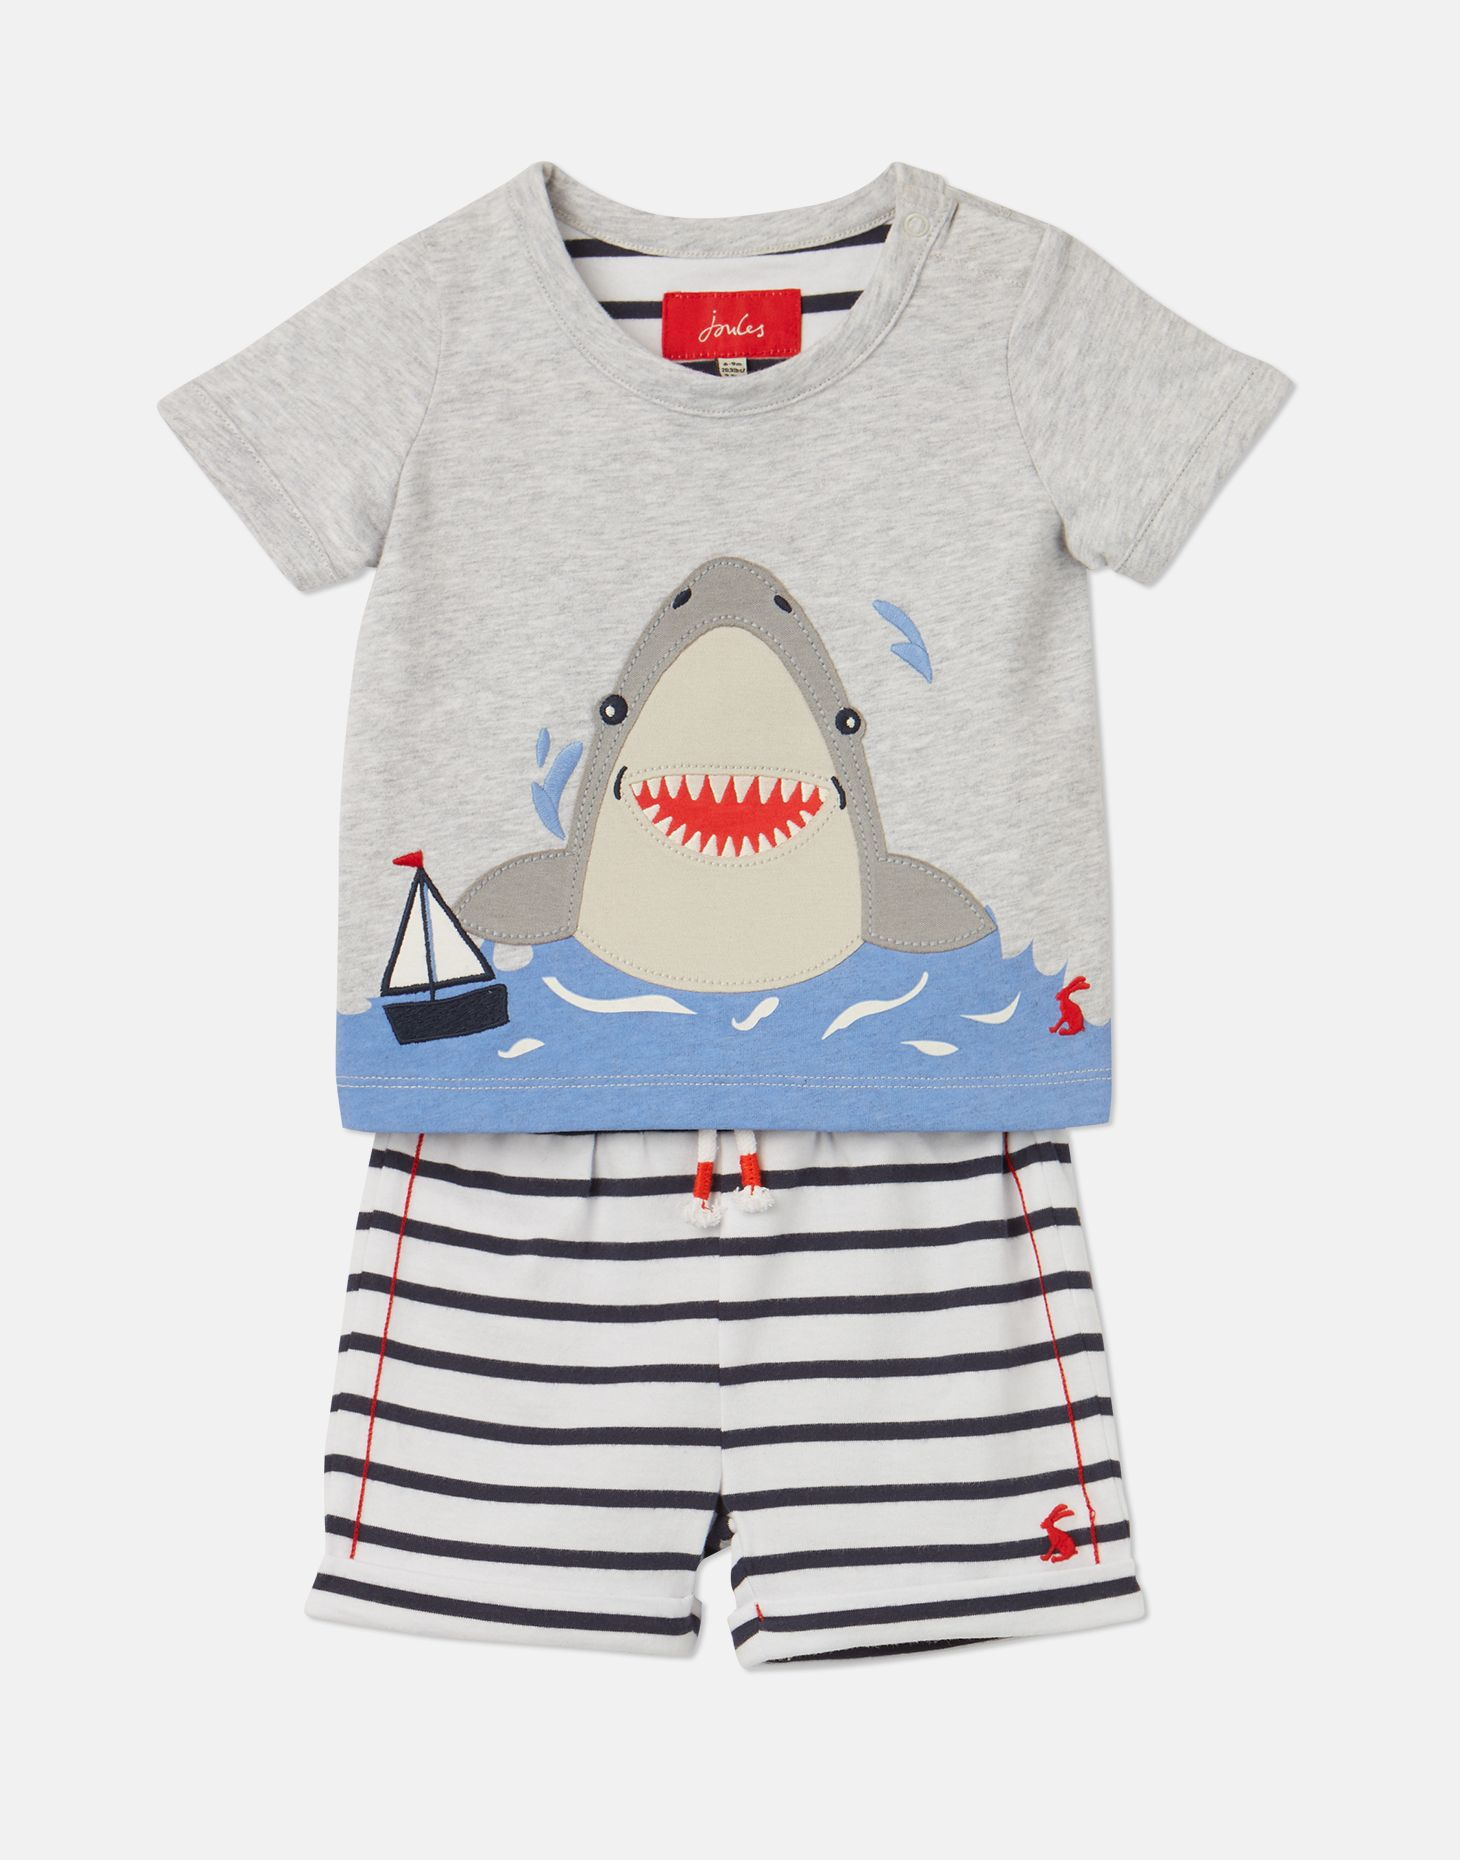 Joules Baby Boys Wave Applique Top And Shorts Set NAVY STRIPE SHARK